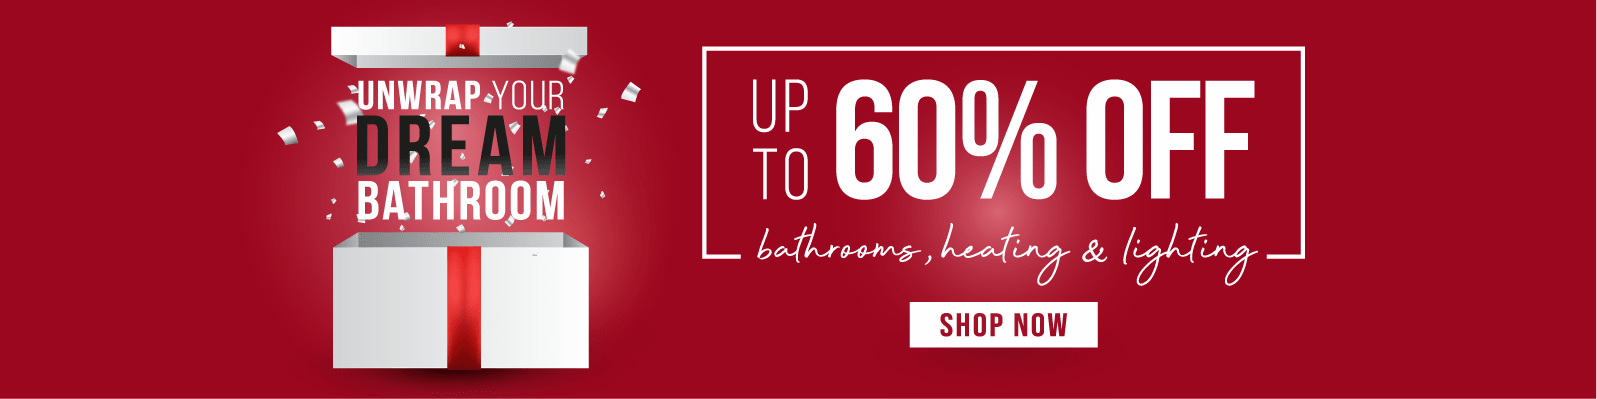 Unwrap Your Dream Bathroom Up to 60% off Bathrooms, Heating & Lighting Shop Now